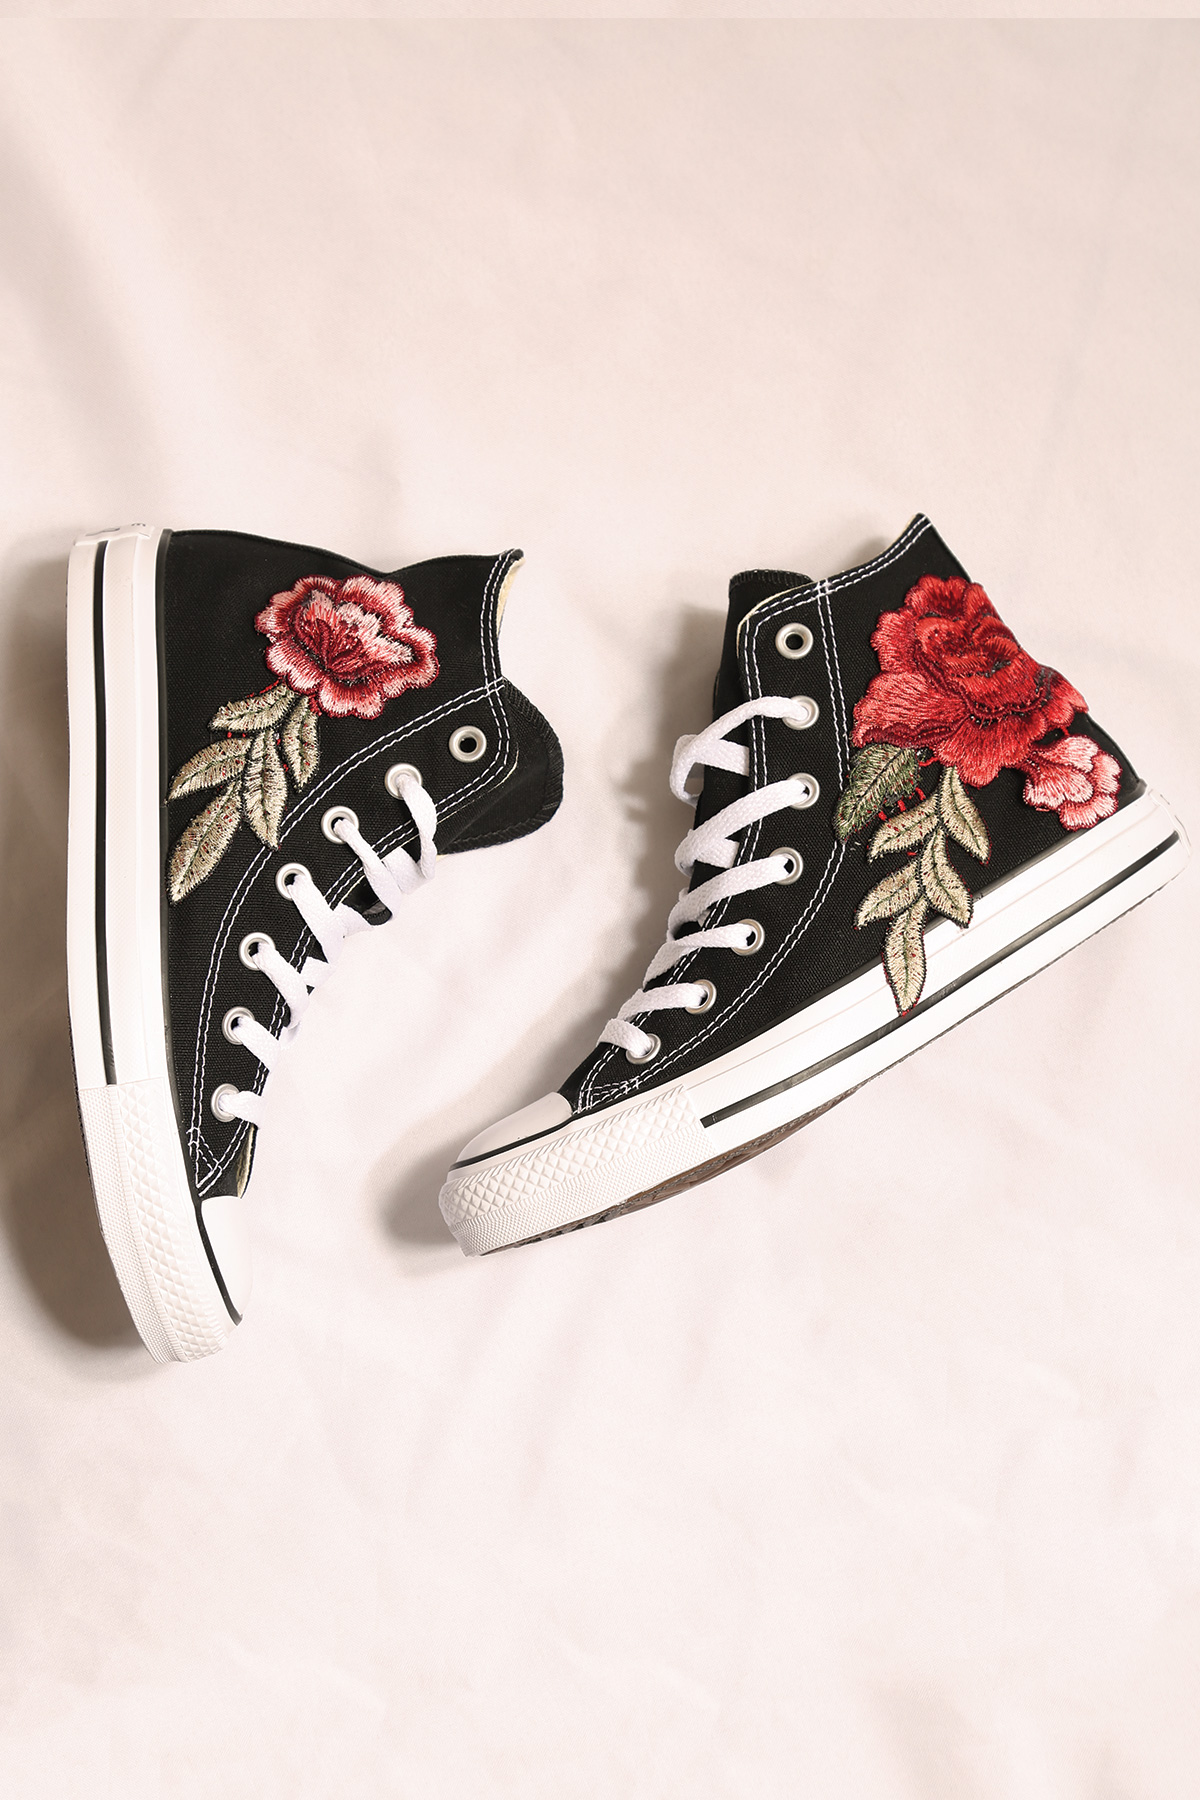 908e551ec39553 custom black converse rose all star high tops — iamkoko.la